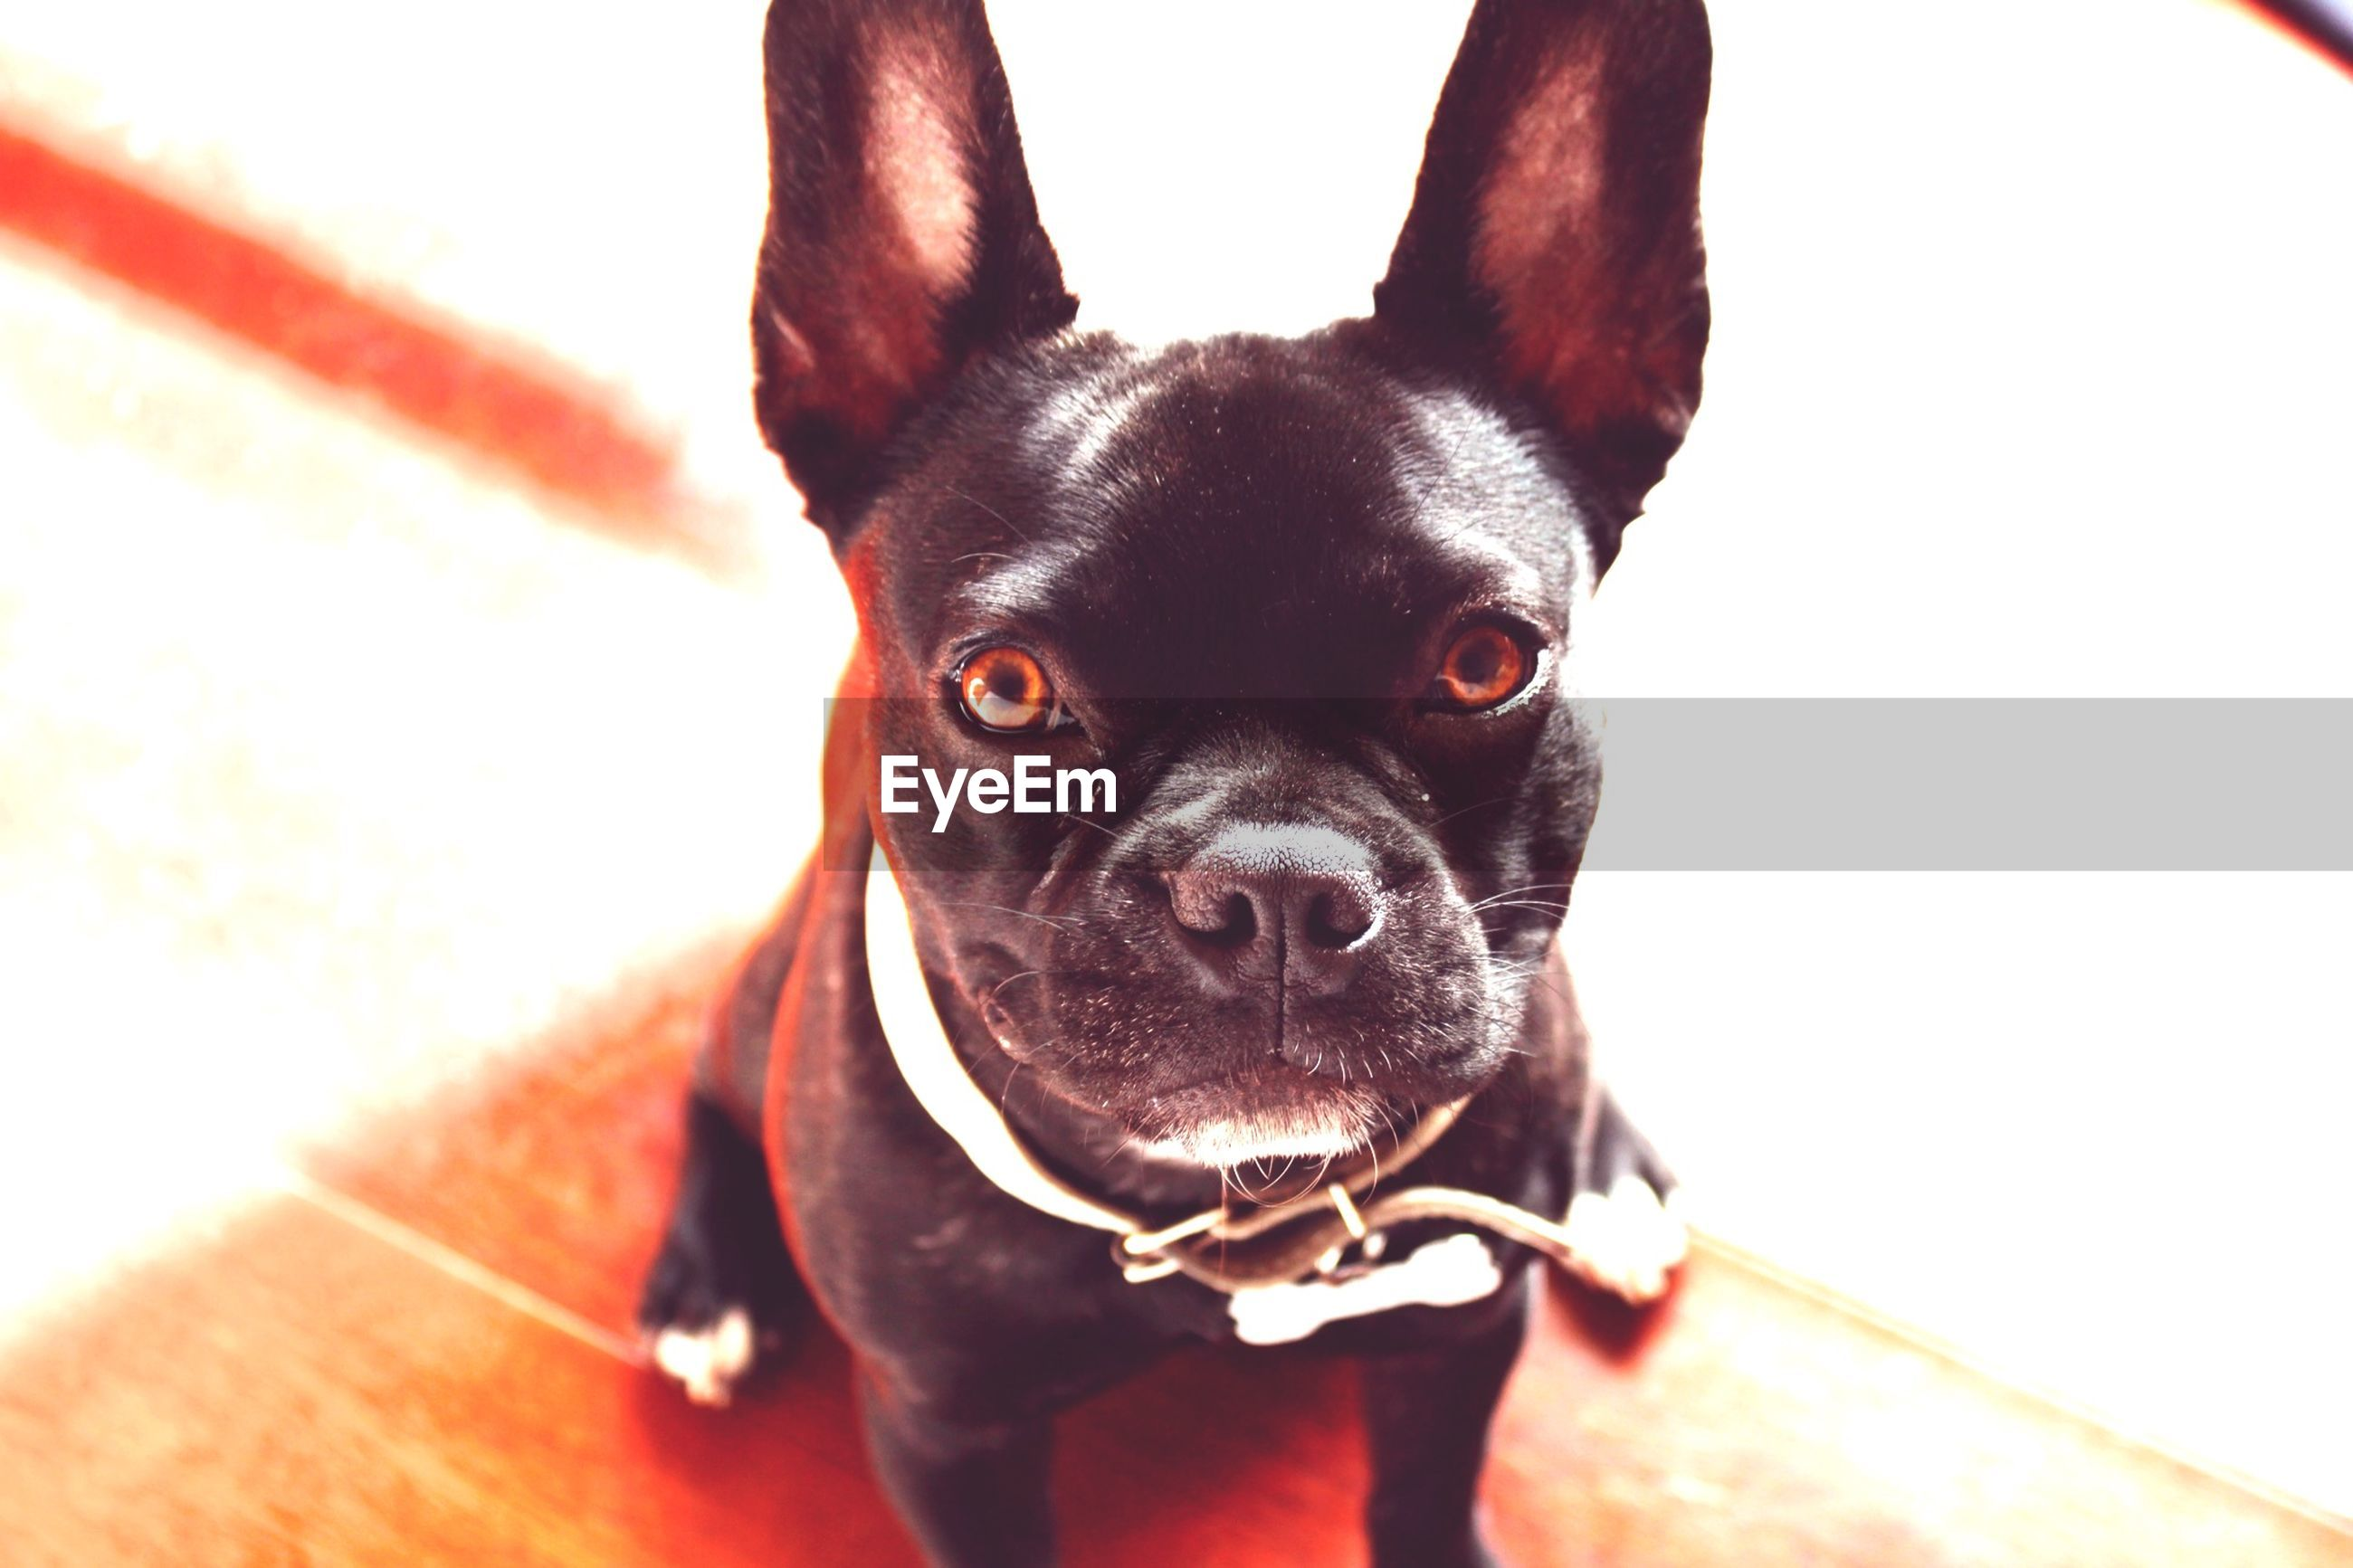 pets, dog, one animal, domestic animals, animal themes, looking at camera, portrait, mammal, animal head, indoors, close-up, animal body part, focus on foreground, pet collar, part of, black color, no people, animal eye, front view